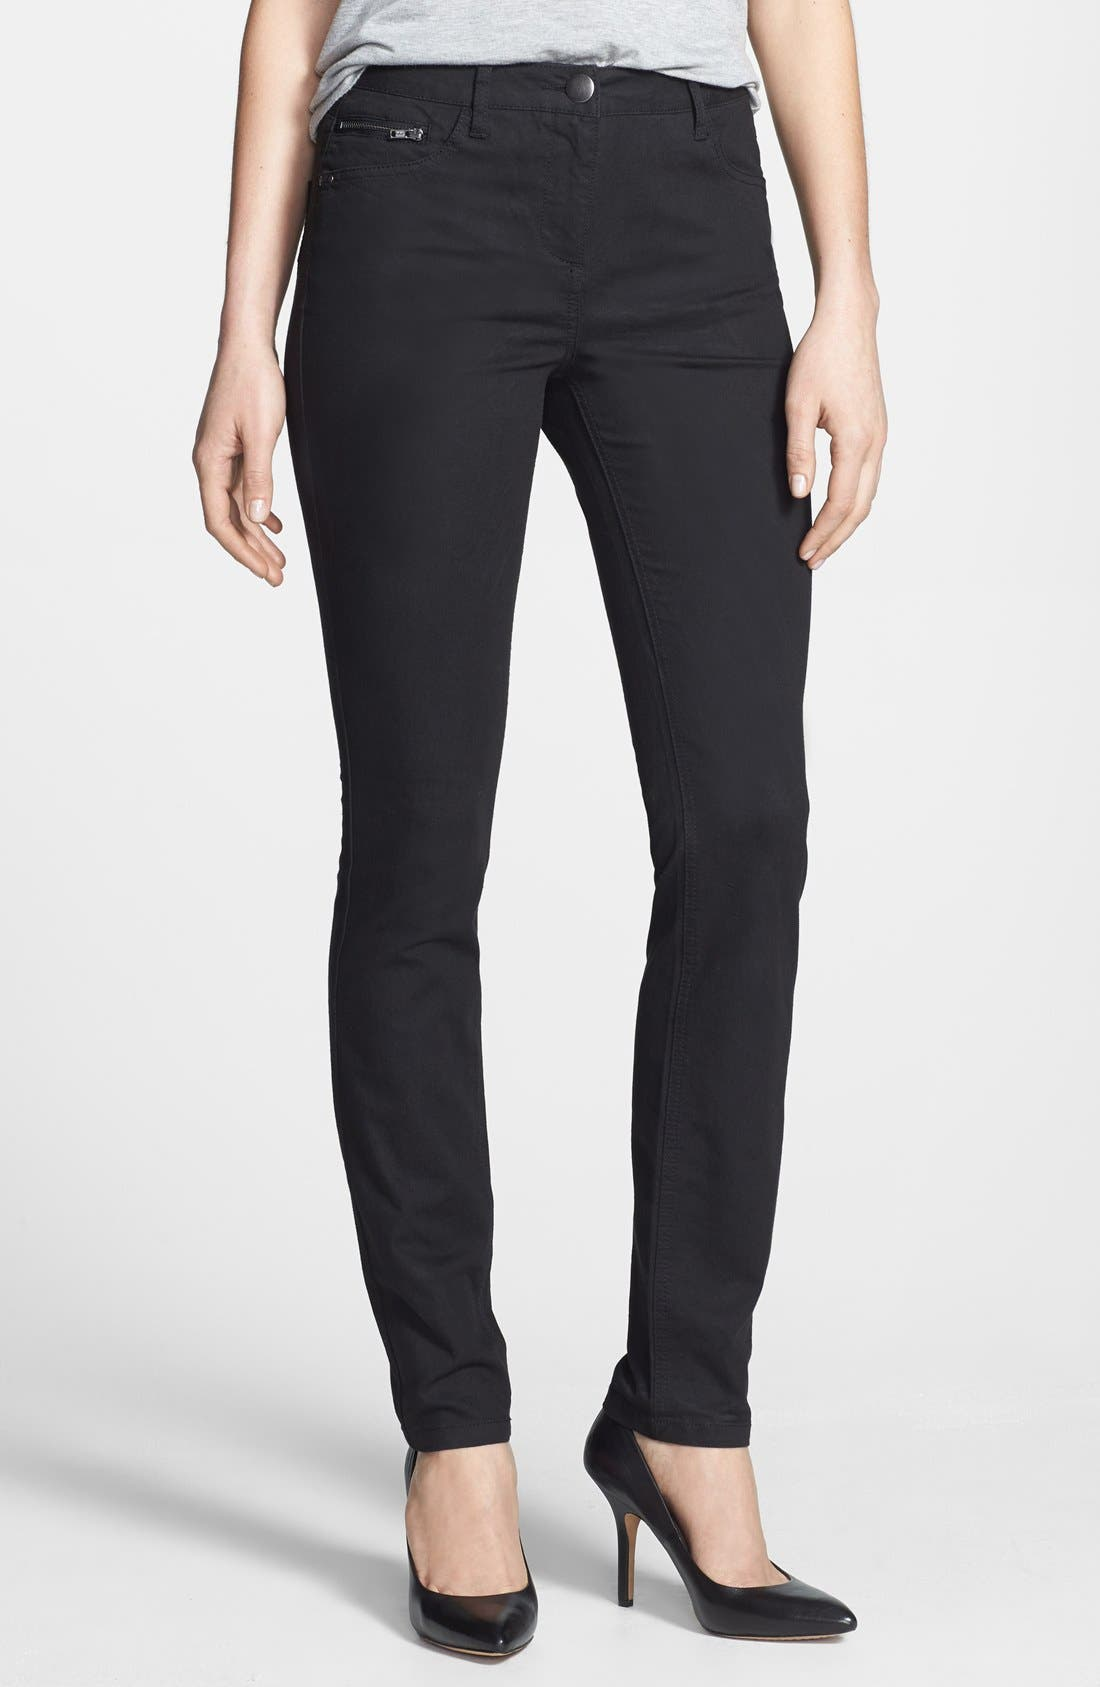 Alternate Image 1 Selected - Wallis Stretch Skinny Jeans (Black)